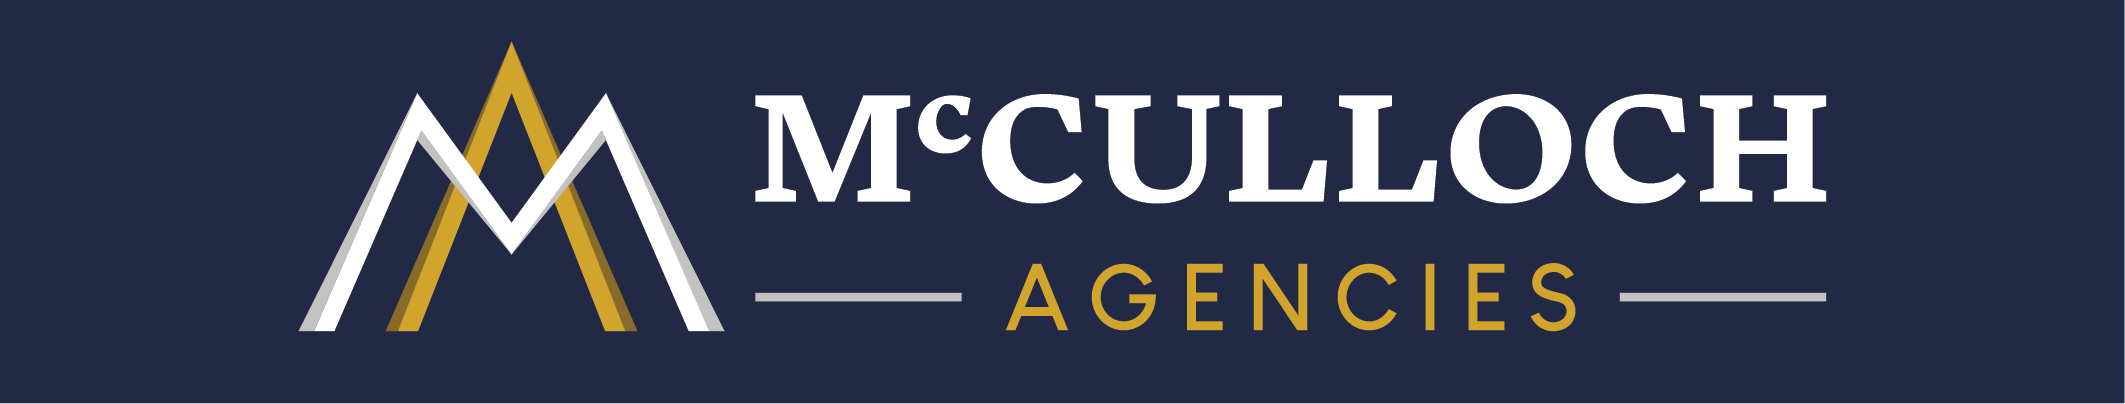 Agency logo - McCulloch Agencies